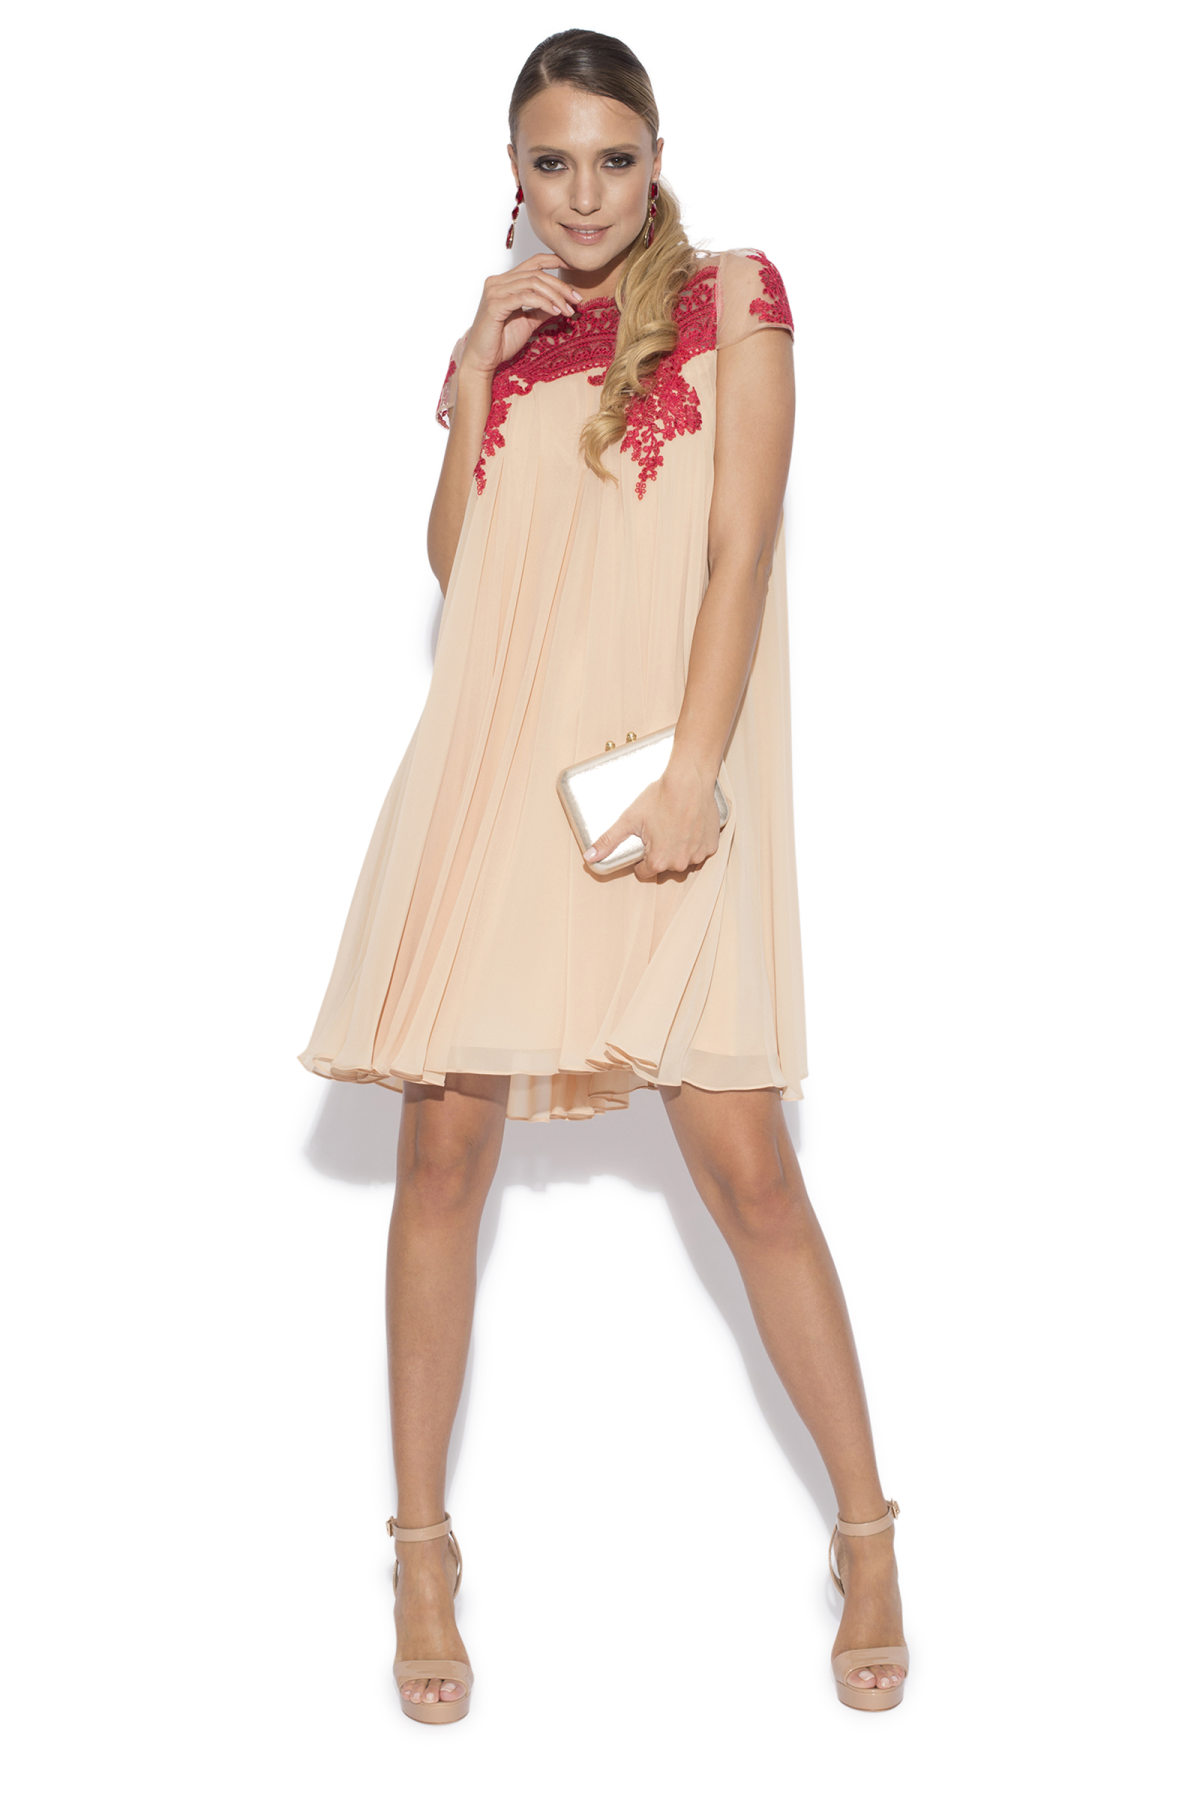 Baby Doll Evening Dresses